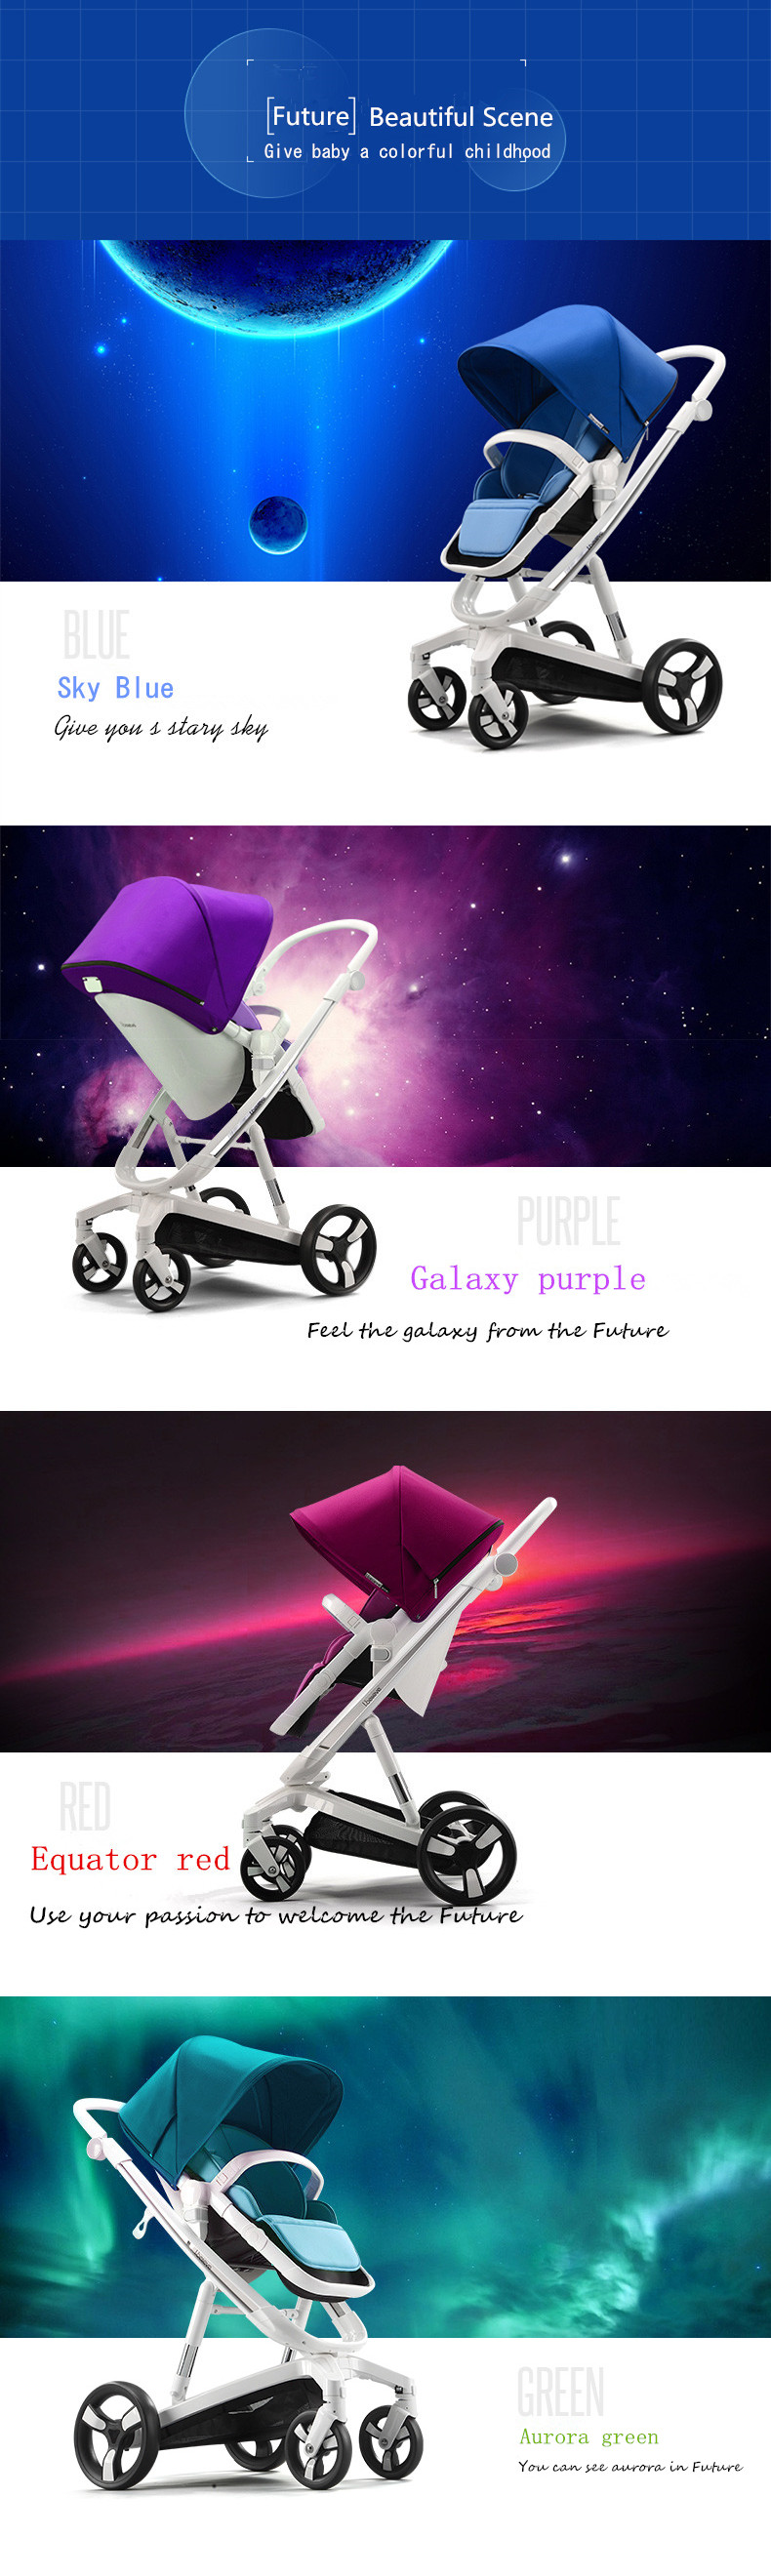 Luxury Baby Stroller With Cushion Child Cart Seat Cushion, Pushchair with Cotton pad Thick Mat